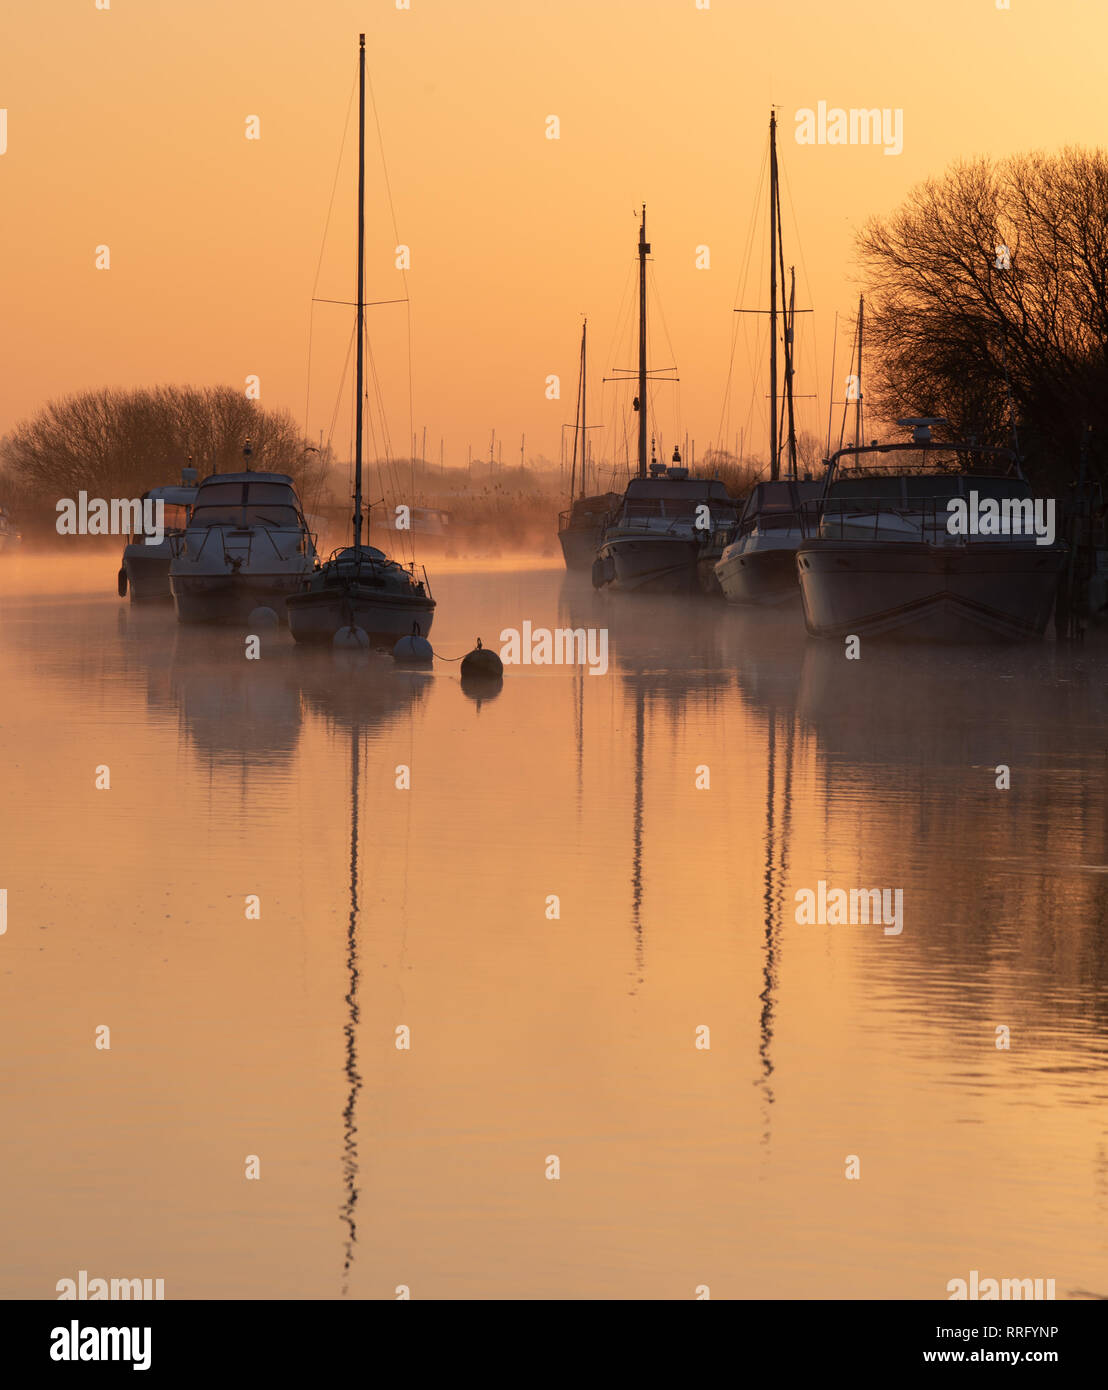 Wareham, Dorset, UK. 26th February 2019. UK Weather: The sky glows with orange and pink hues as the mist rises over the River Frome on a crisp, chilly February morning. A tranquil scene as sailing boats moored along the river bank are reflected in the calm water on the start of what is set to be another gloriously sunny day.  Credit: Celia McMahon/Alamy Live News - Stock Image